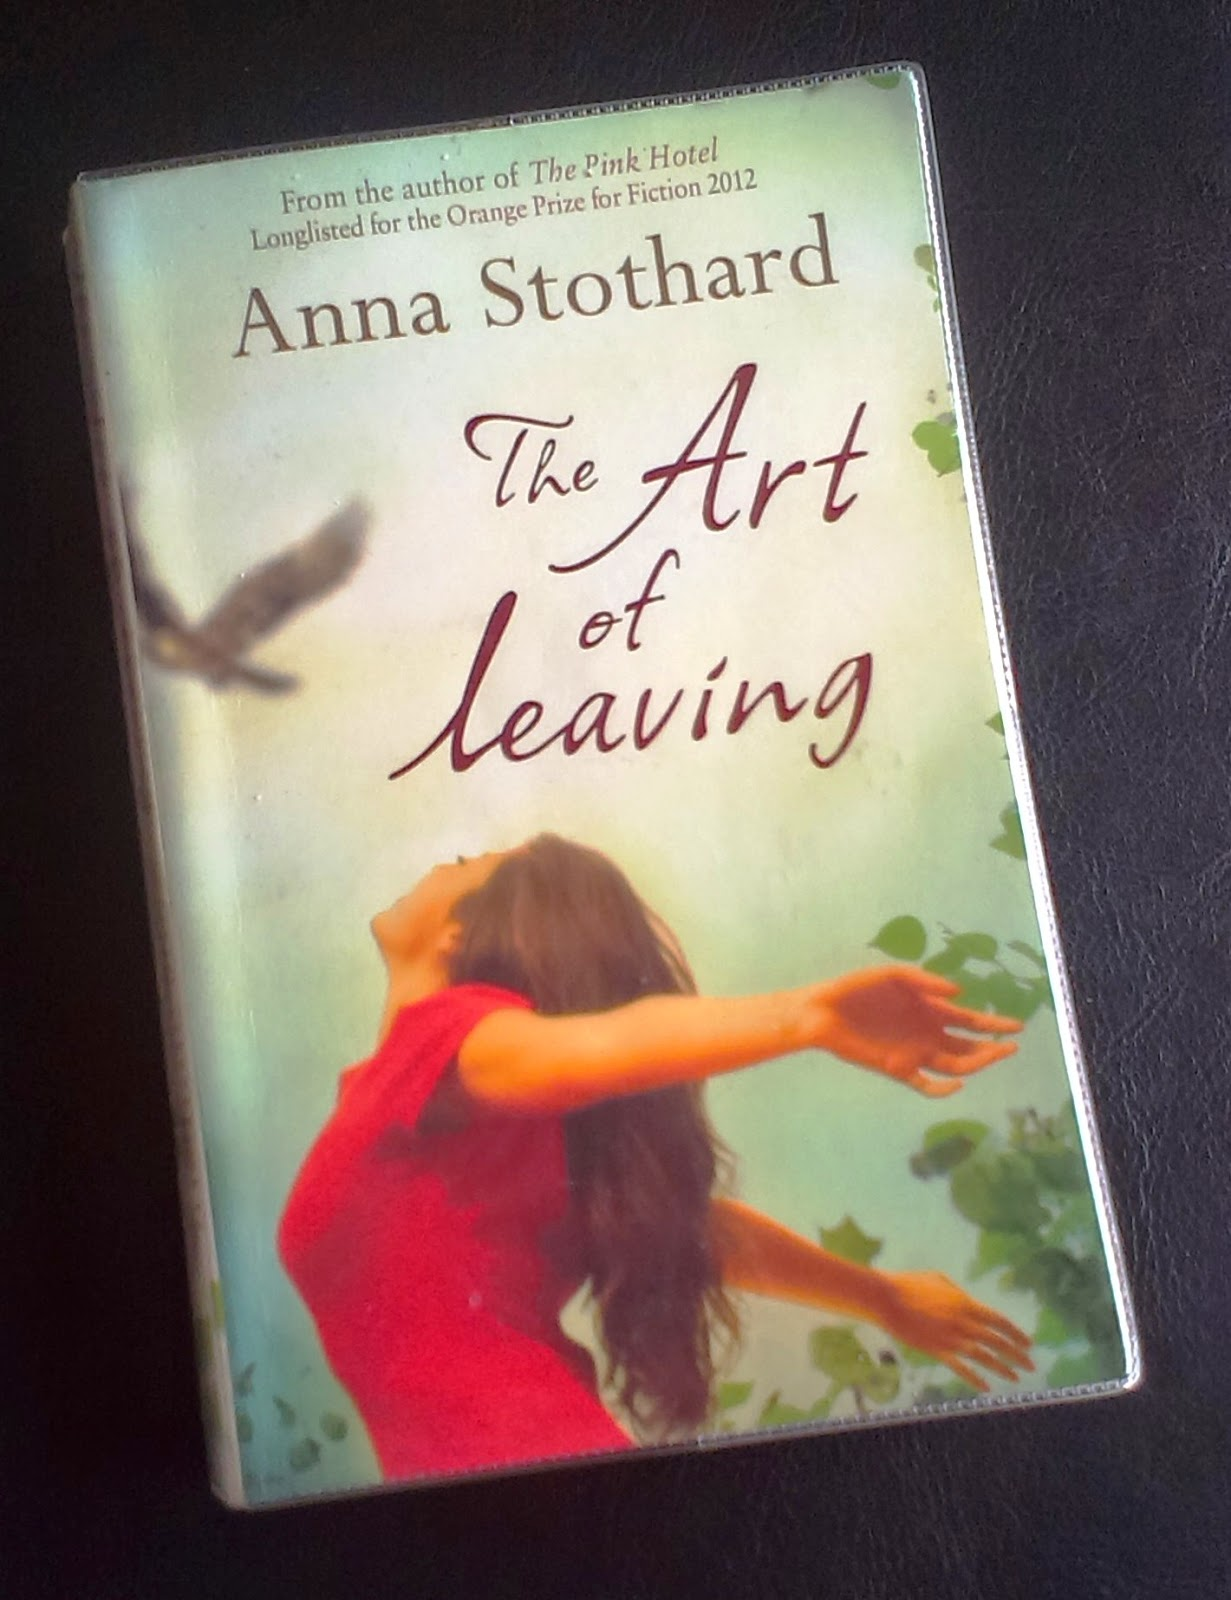 The Art of Leaving by Anna Stothard